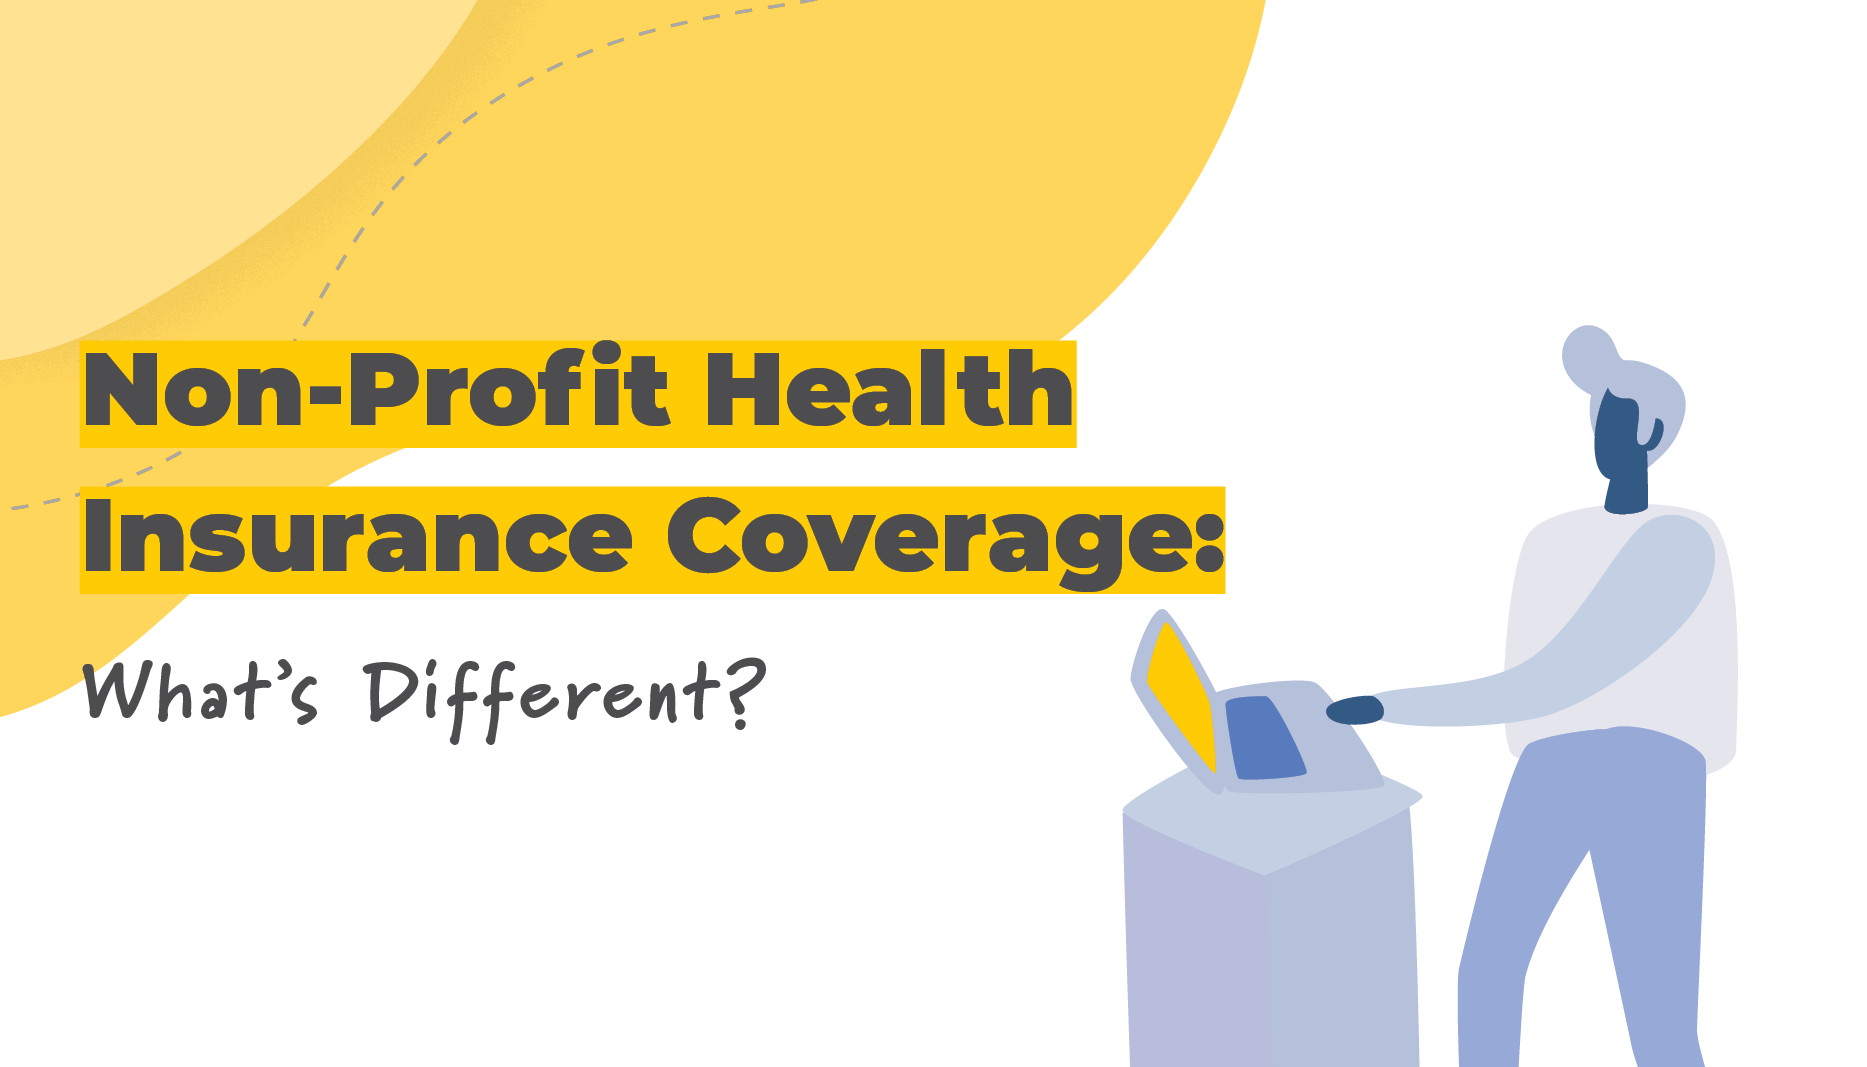 Non-Profit Health Insurance: What's Different? | Benefits by Design